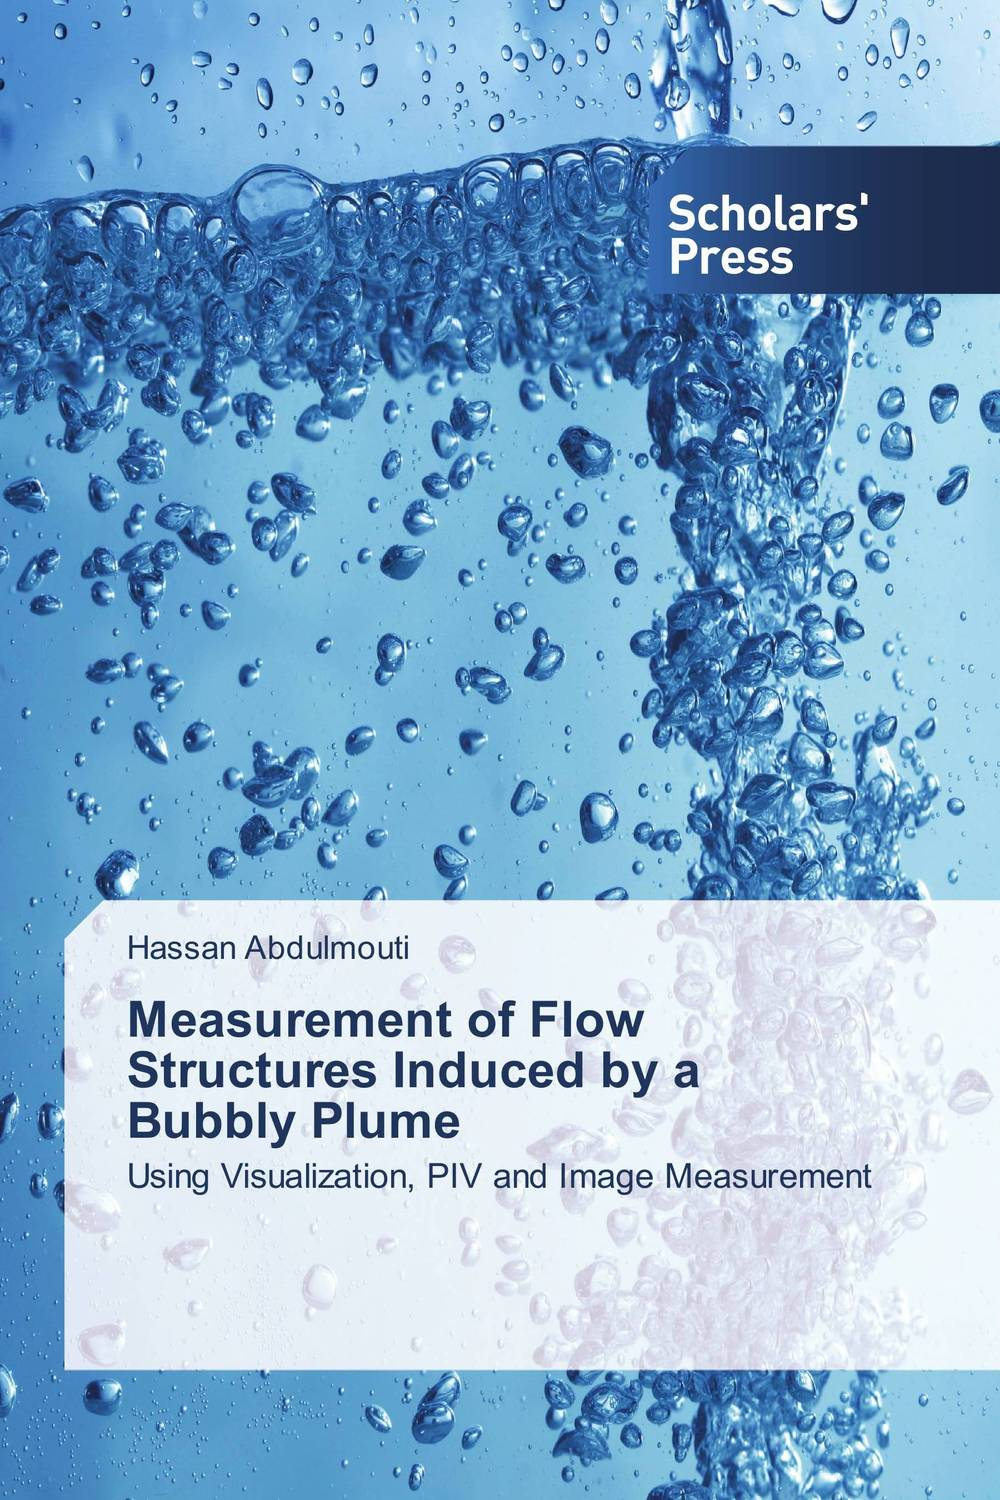 Measurement of Flow Structures Induced by a Bubbly Plume игрушка мягкая nattou jack jules nestor в ассорт слоник мишка утенок 843126